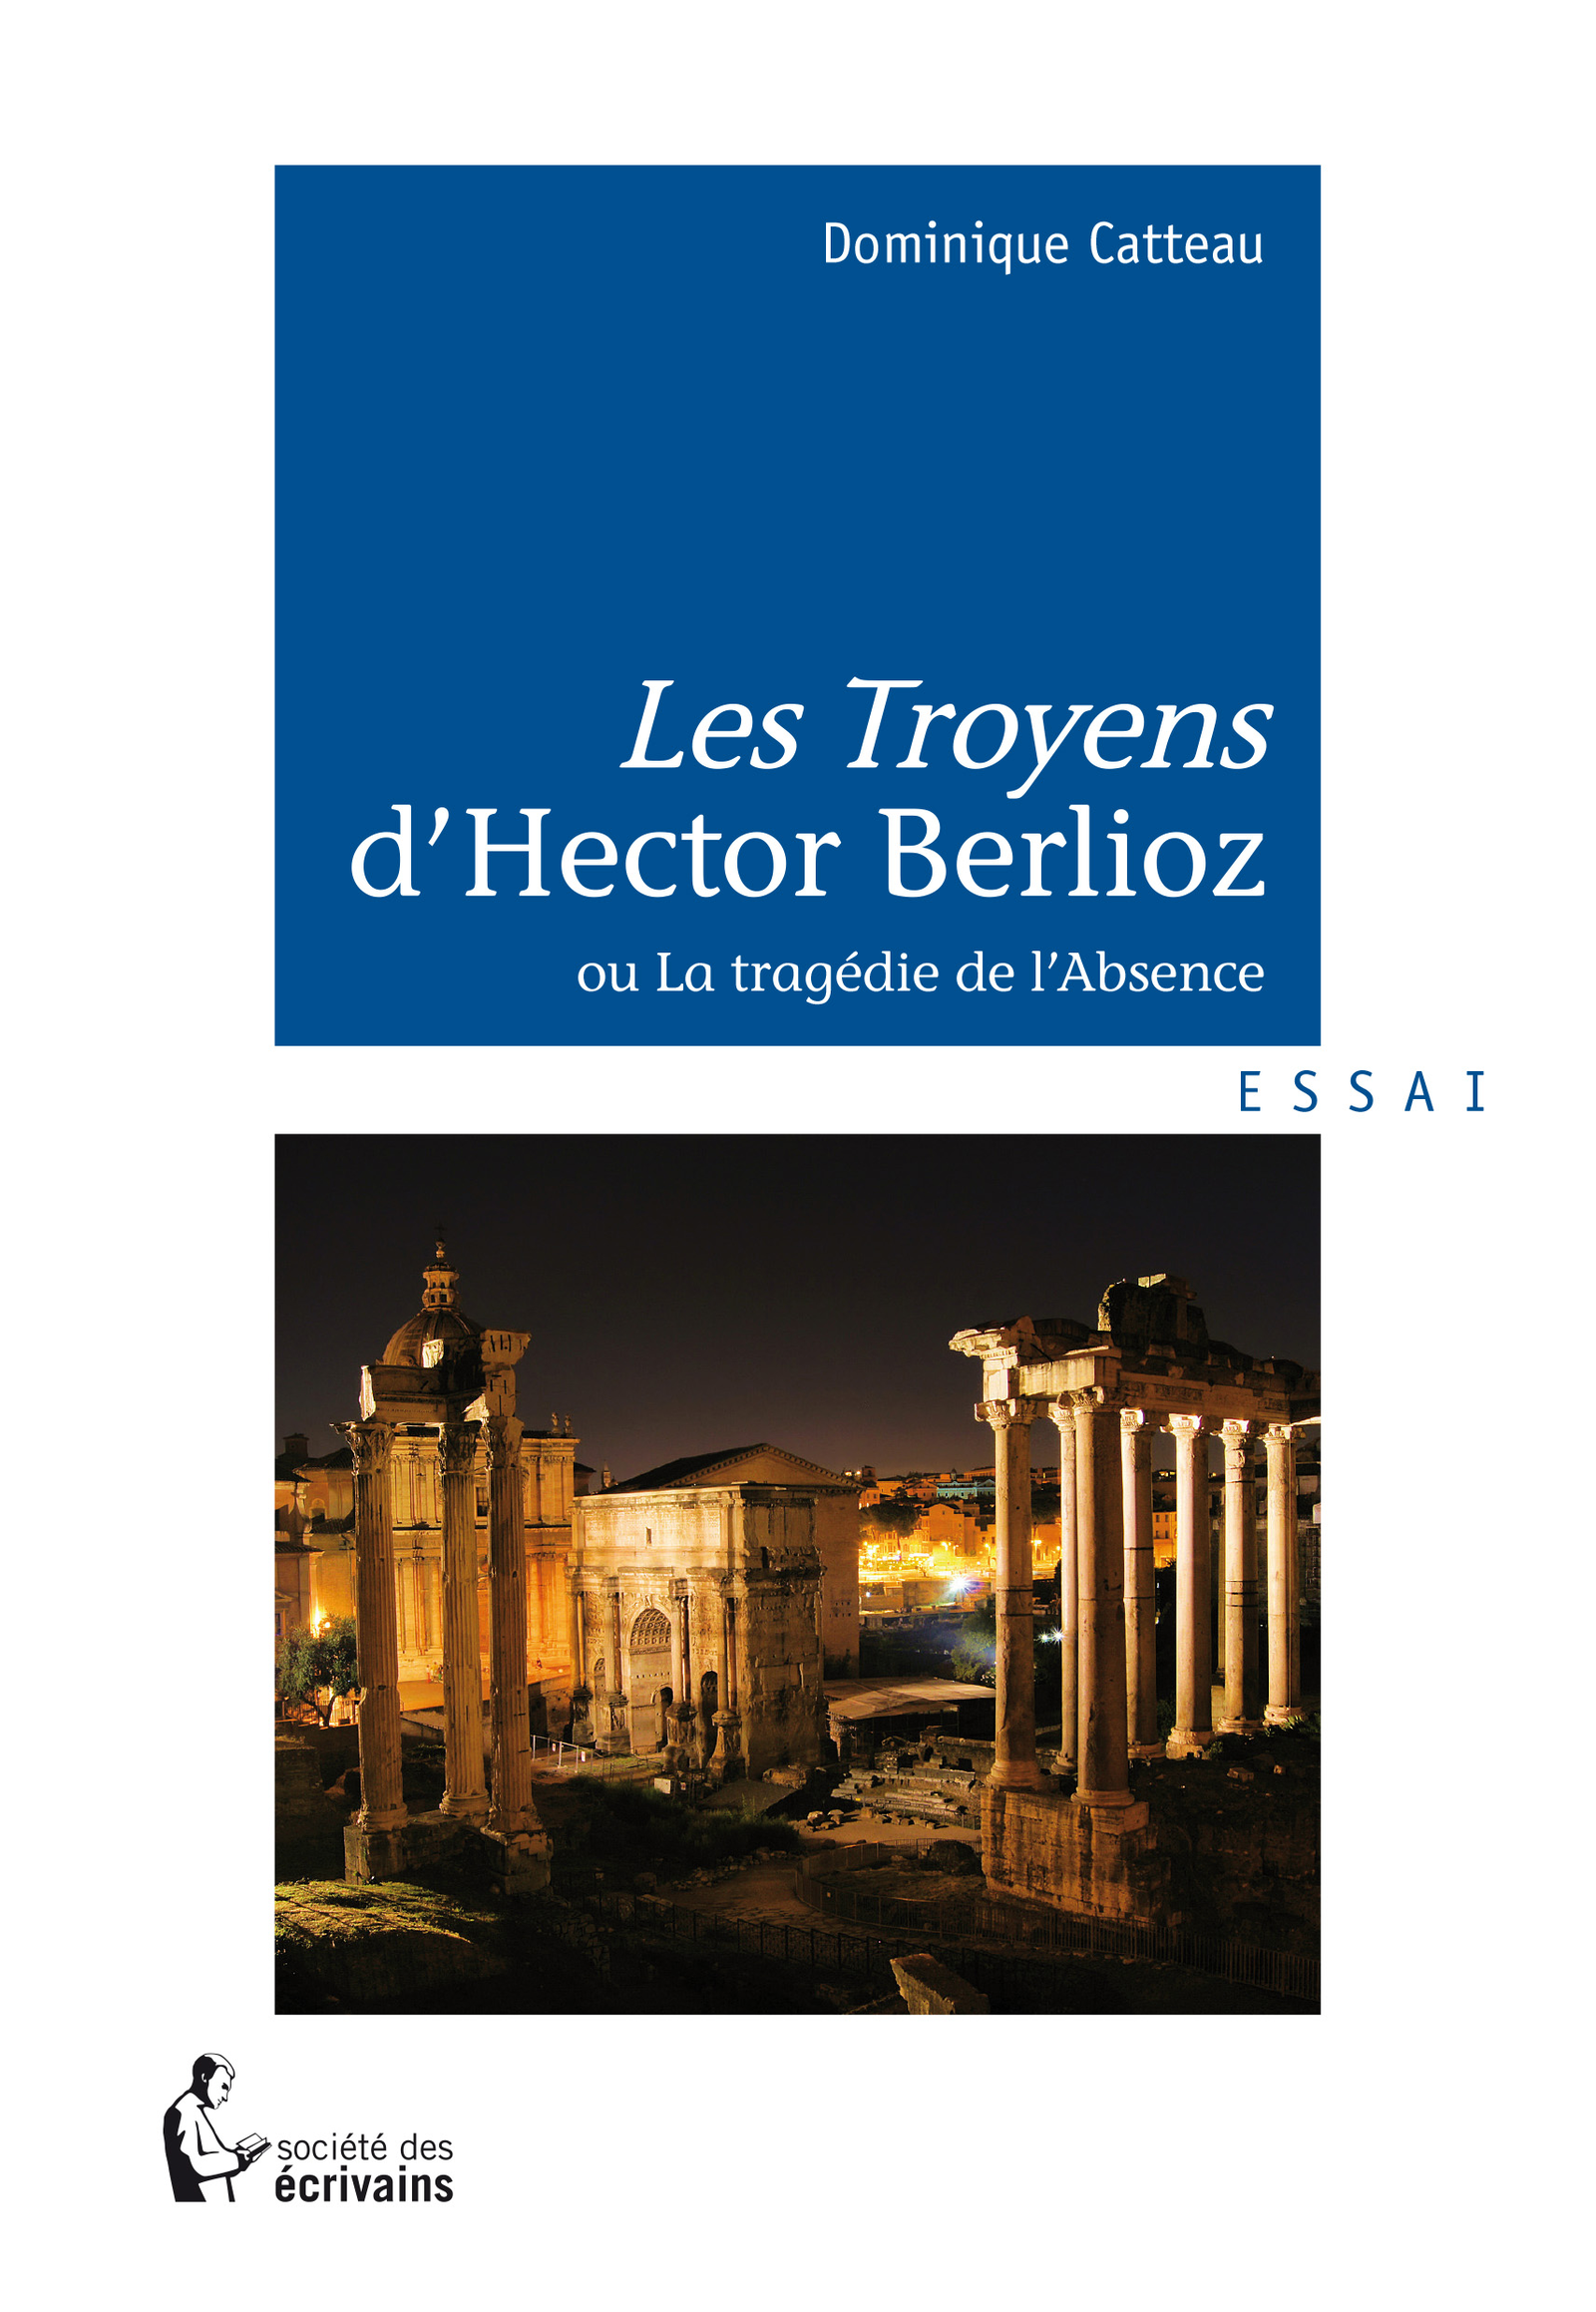 Les Troyens d'Hector Berlioz